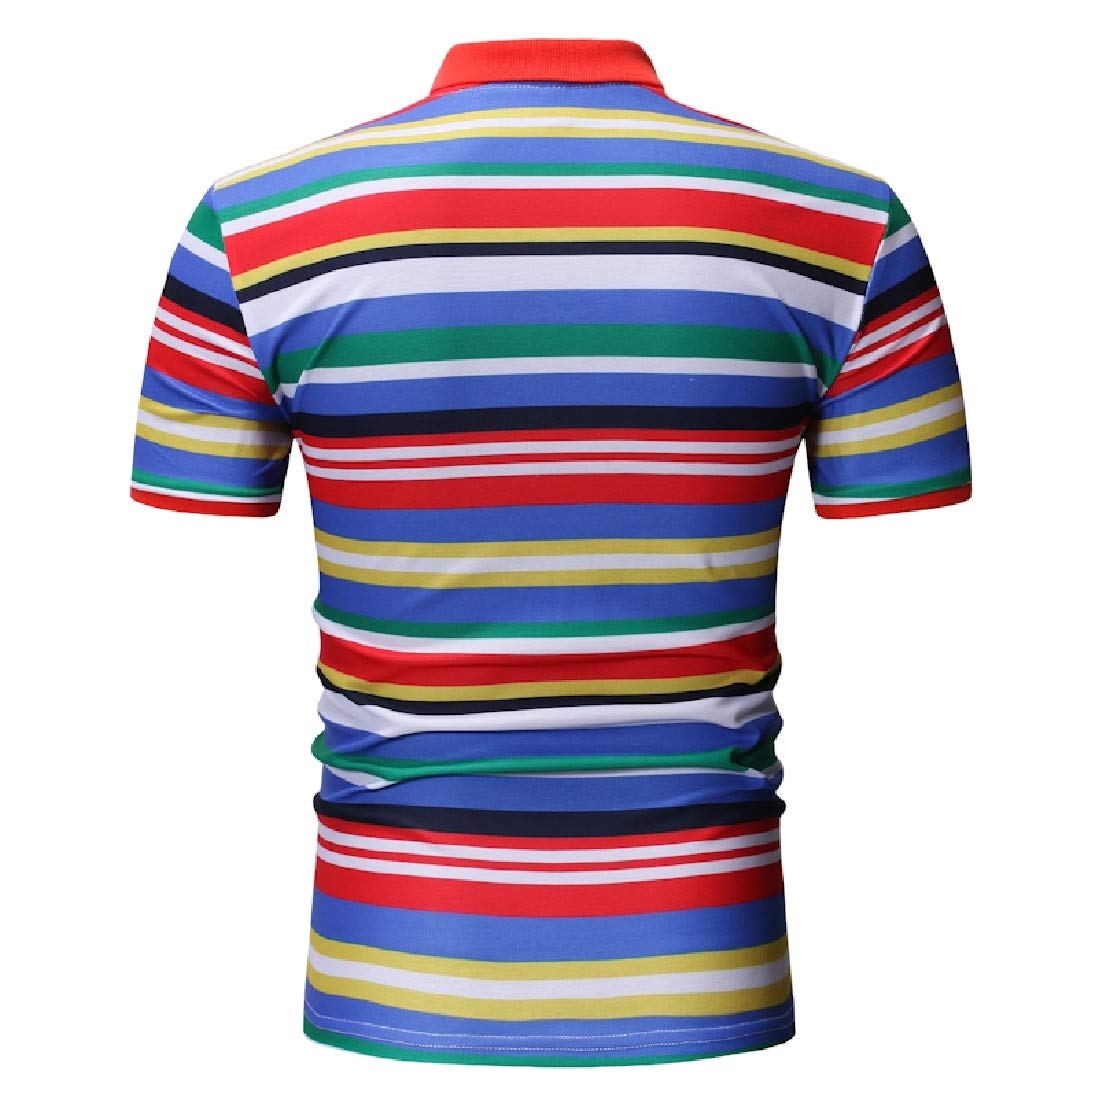 BAYY Mens Short Sleeve Lapel Collar Ombre Stripes Printed Comfy Polo Shirt